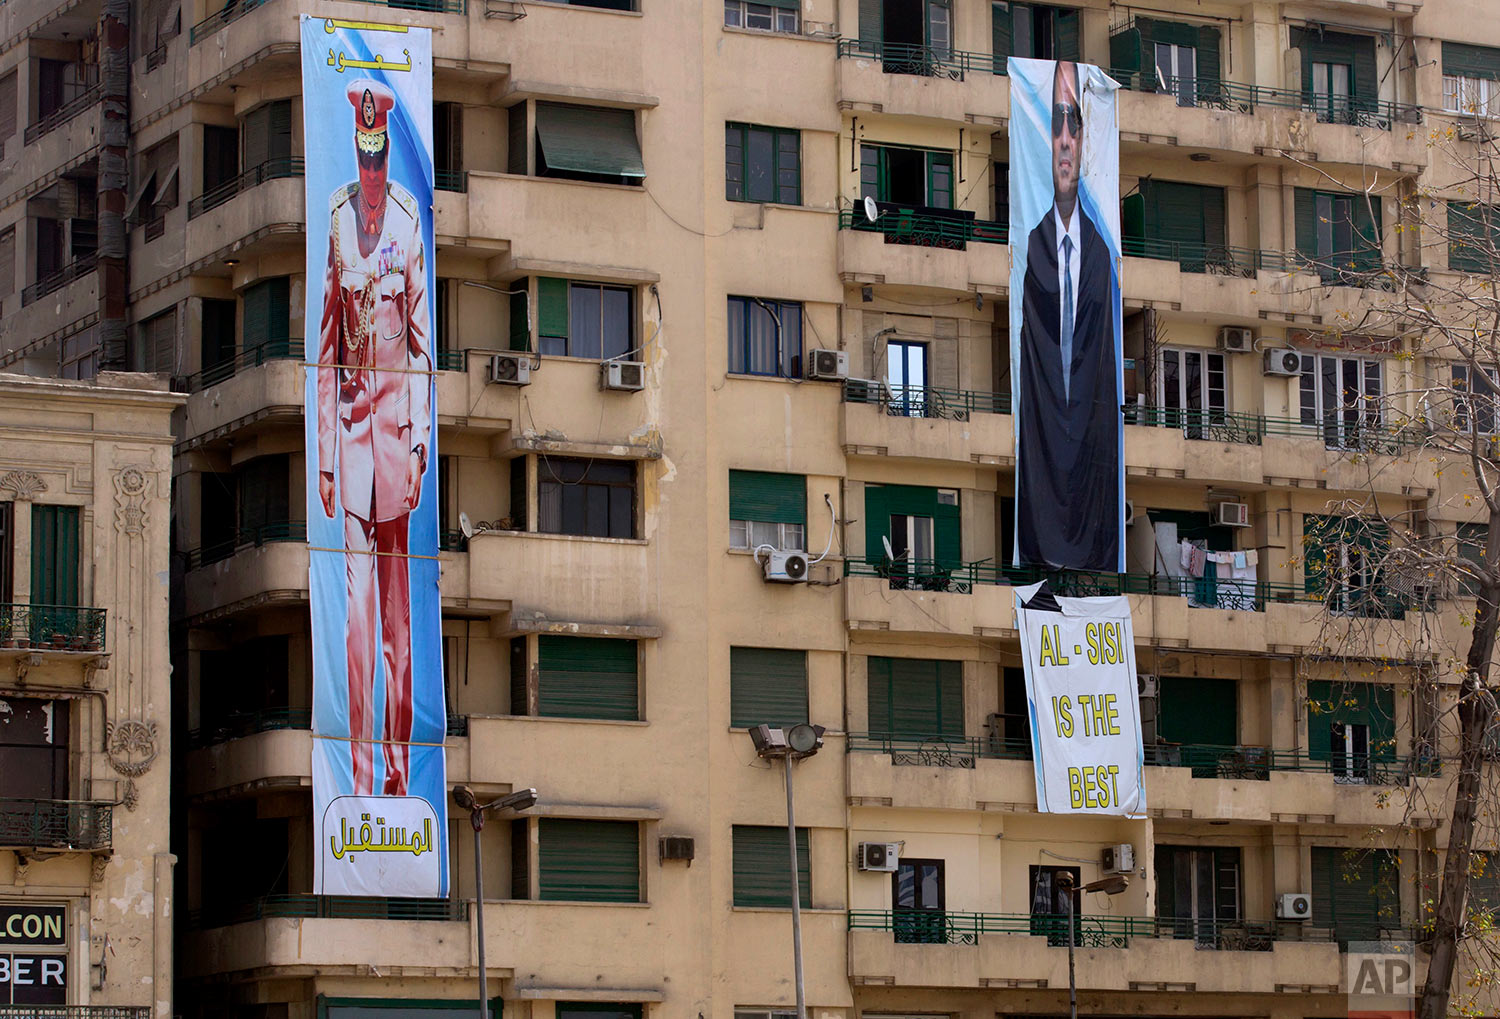 In this Thursday, March 22, 2018 photo, election banners for Egyptian President Abdel-Fattah el-Sissi, hang in Tahrir Square, which was the focal point of the Jan. 25, 2011 Egyptian uprising, in Cairo, Egypt. Seven years ago, Cairo's Tahrir Square was filled with tens of thousands of Egyptians demanding change. Now it is festooned with portraits of the president, vowing continuity. Almost all traces of the popular revolt that overthrew autocrat Hosni Mubarak in 2011 are now gone. (AP Photo/Amr Nabil)